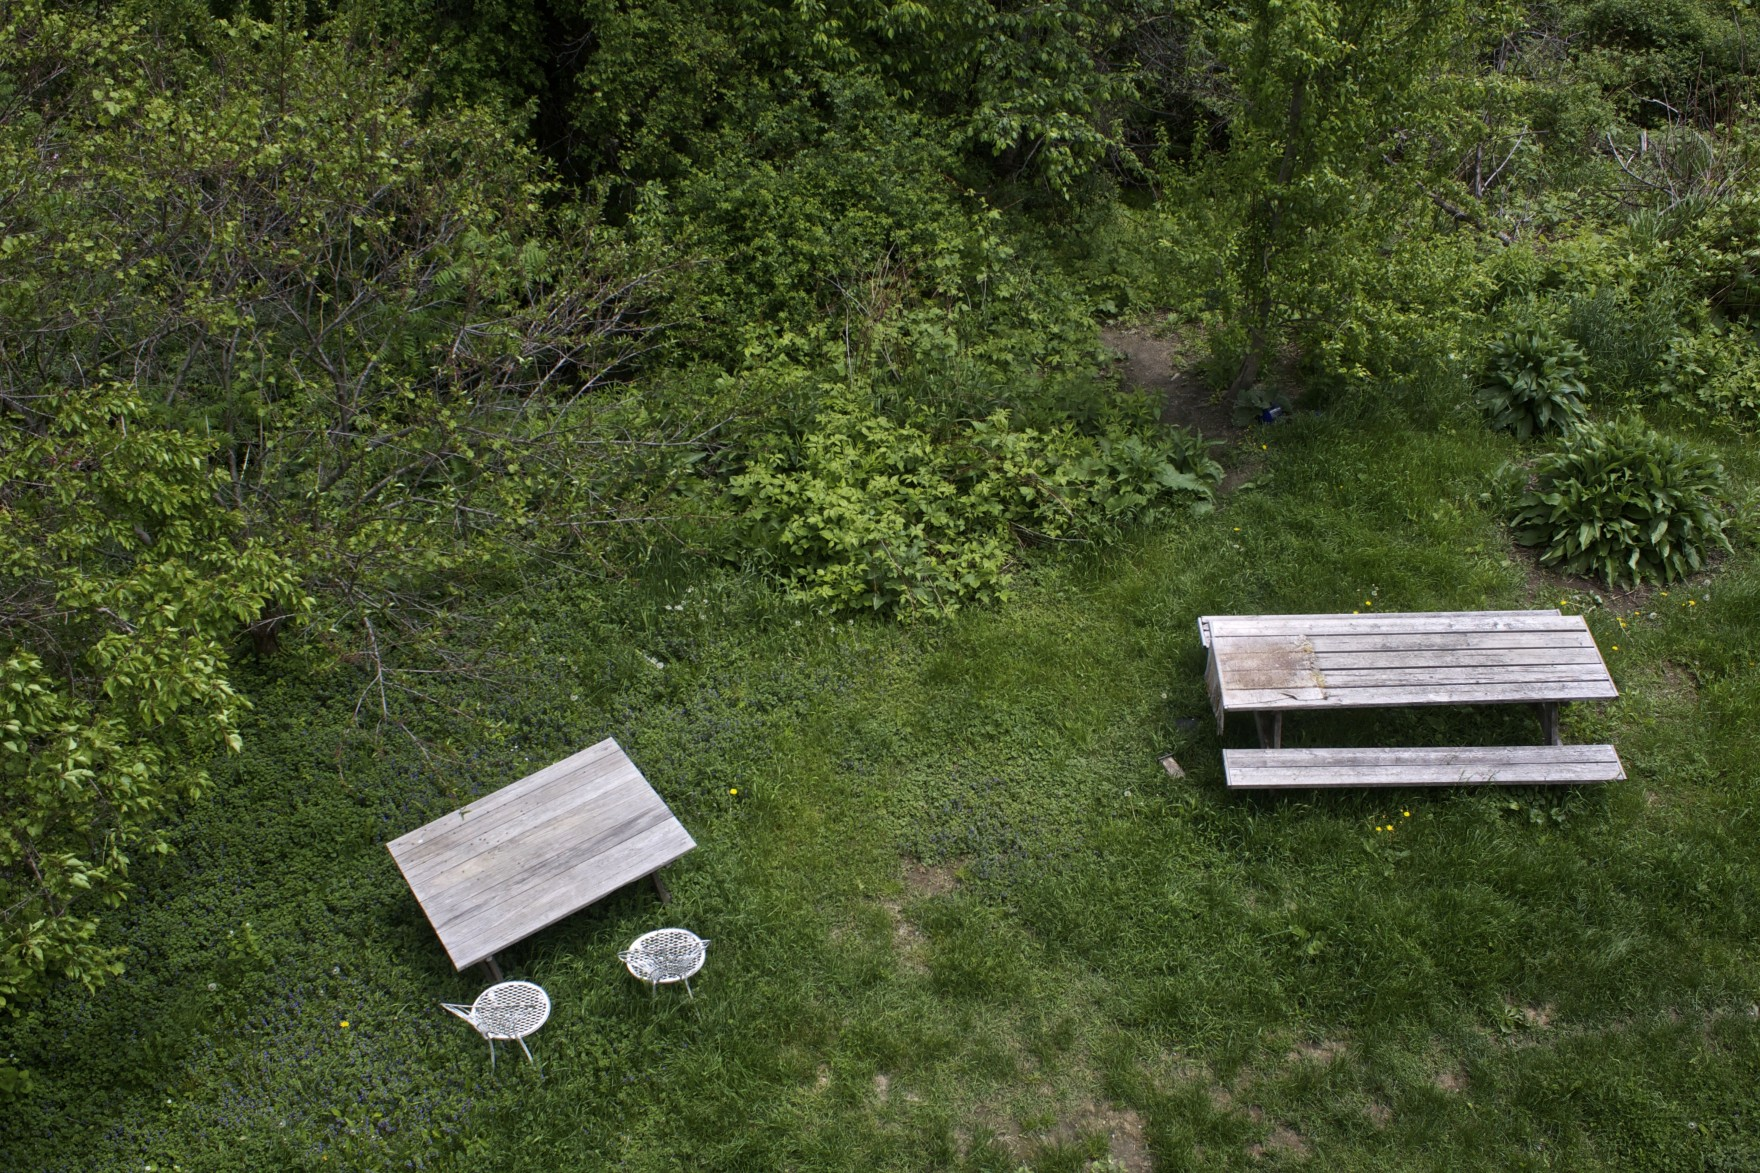 The-Bored-Vegetarian-Picnic-Tables-1760x1173.jpg